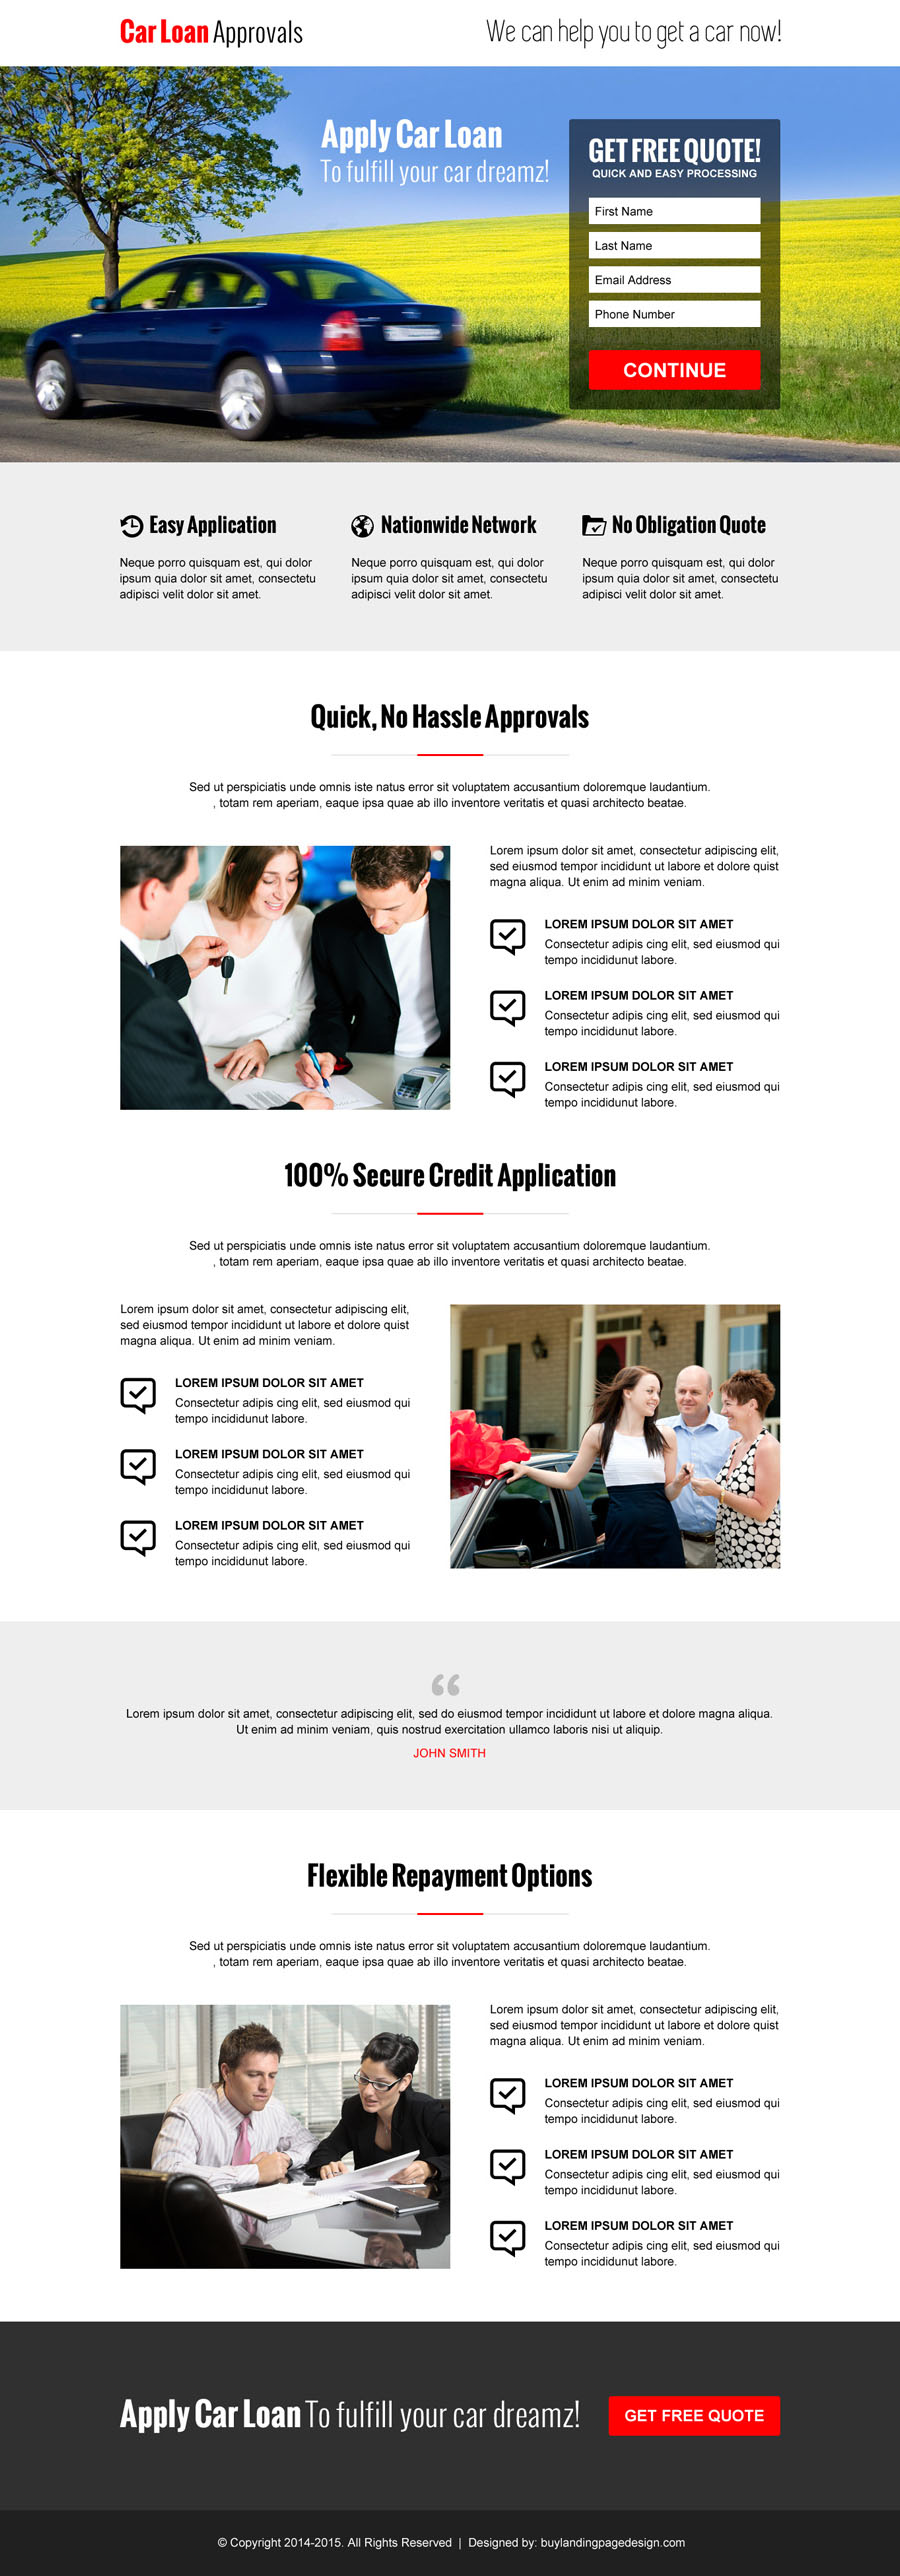 hassle-free-car-loan-approvals-lead-capture-converting-responsive-landing-page-design-template-003